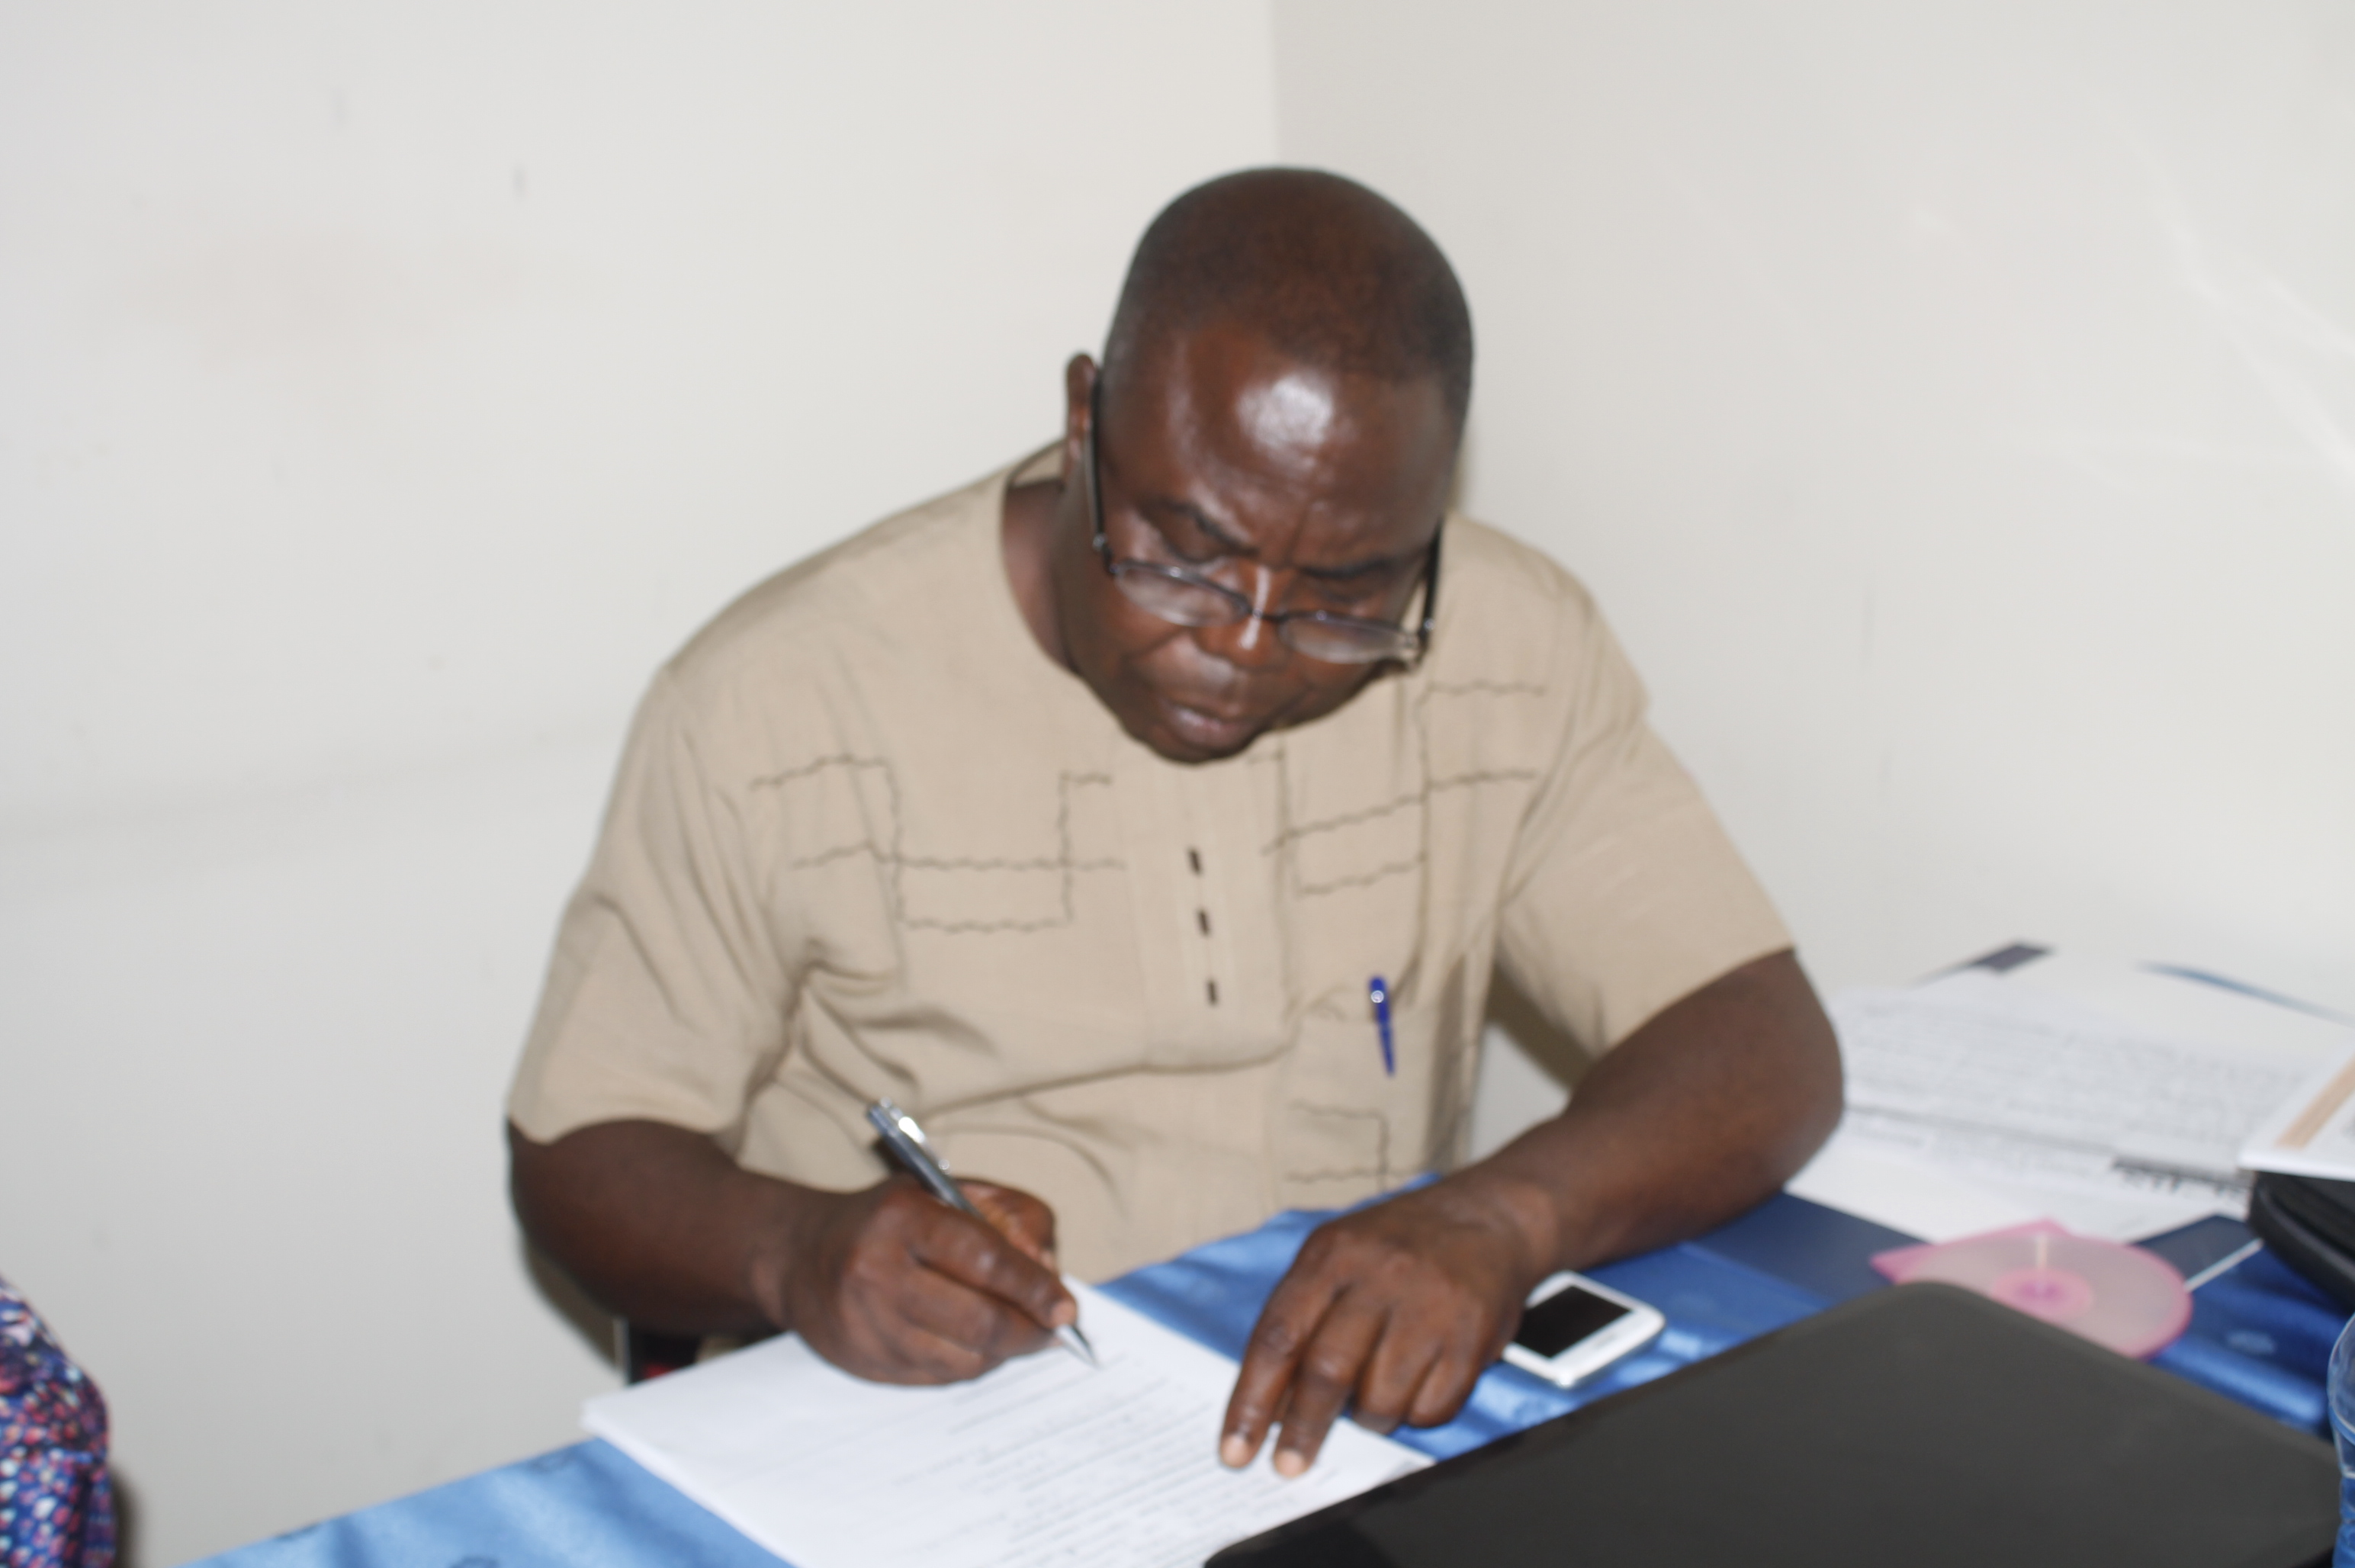 The training is fantastic, has broadened my scope to creative thinking, strategic planning and contract bidding. I am now a better manager, entrepreneur and leader. The resource persons are simply awesome. They blew my mind. A great Programme!  – Prof. O. Ogbu, Director of Consultancy Services, Ebonyi State University.